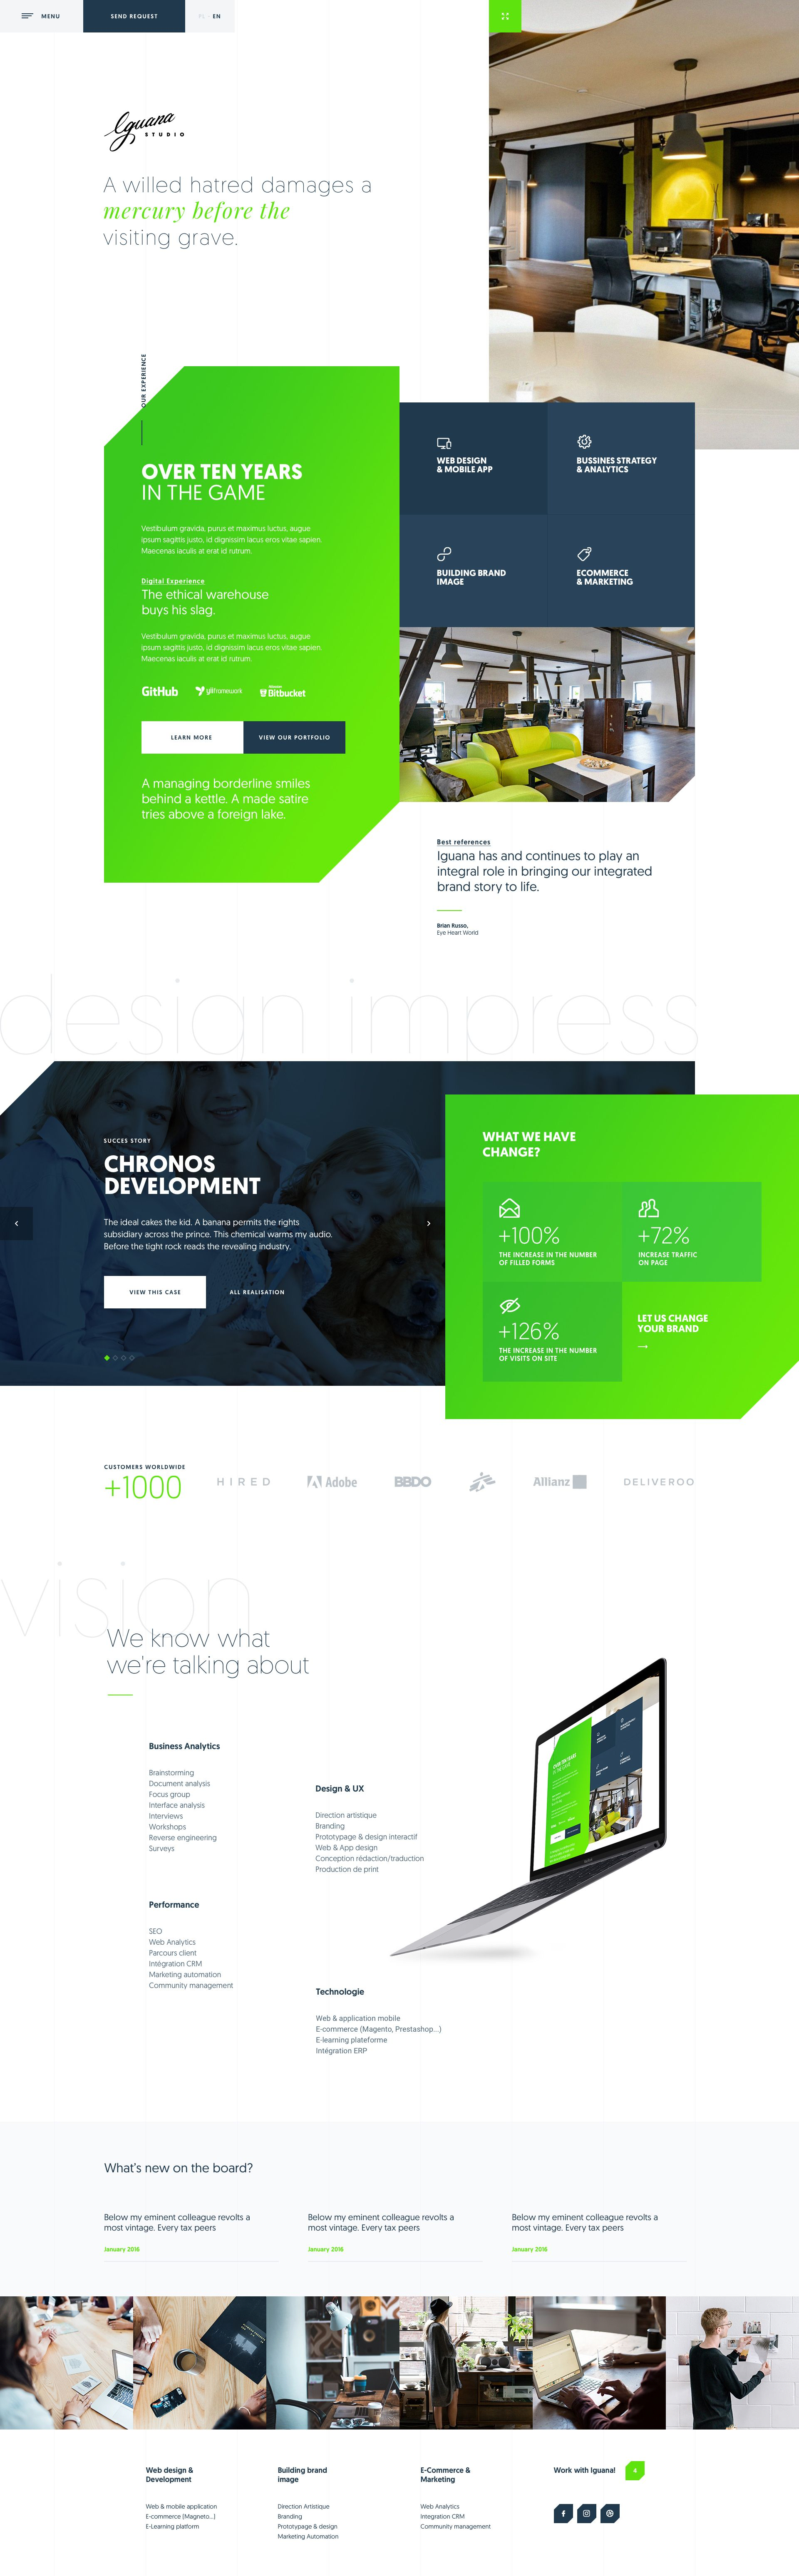 We Are Presenting You A Second View Of Our Own Website You Will Be Able To Visit In Online Edgy Website Design Web Design User Experience Fun Website Design